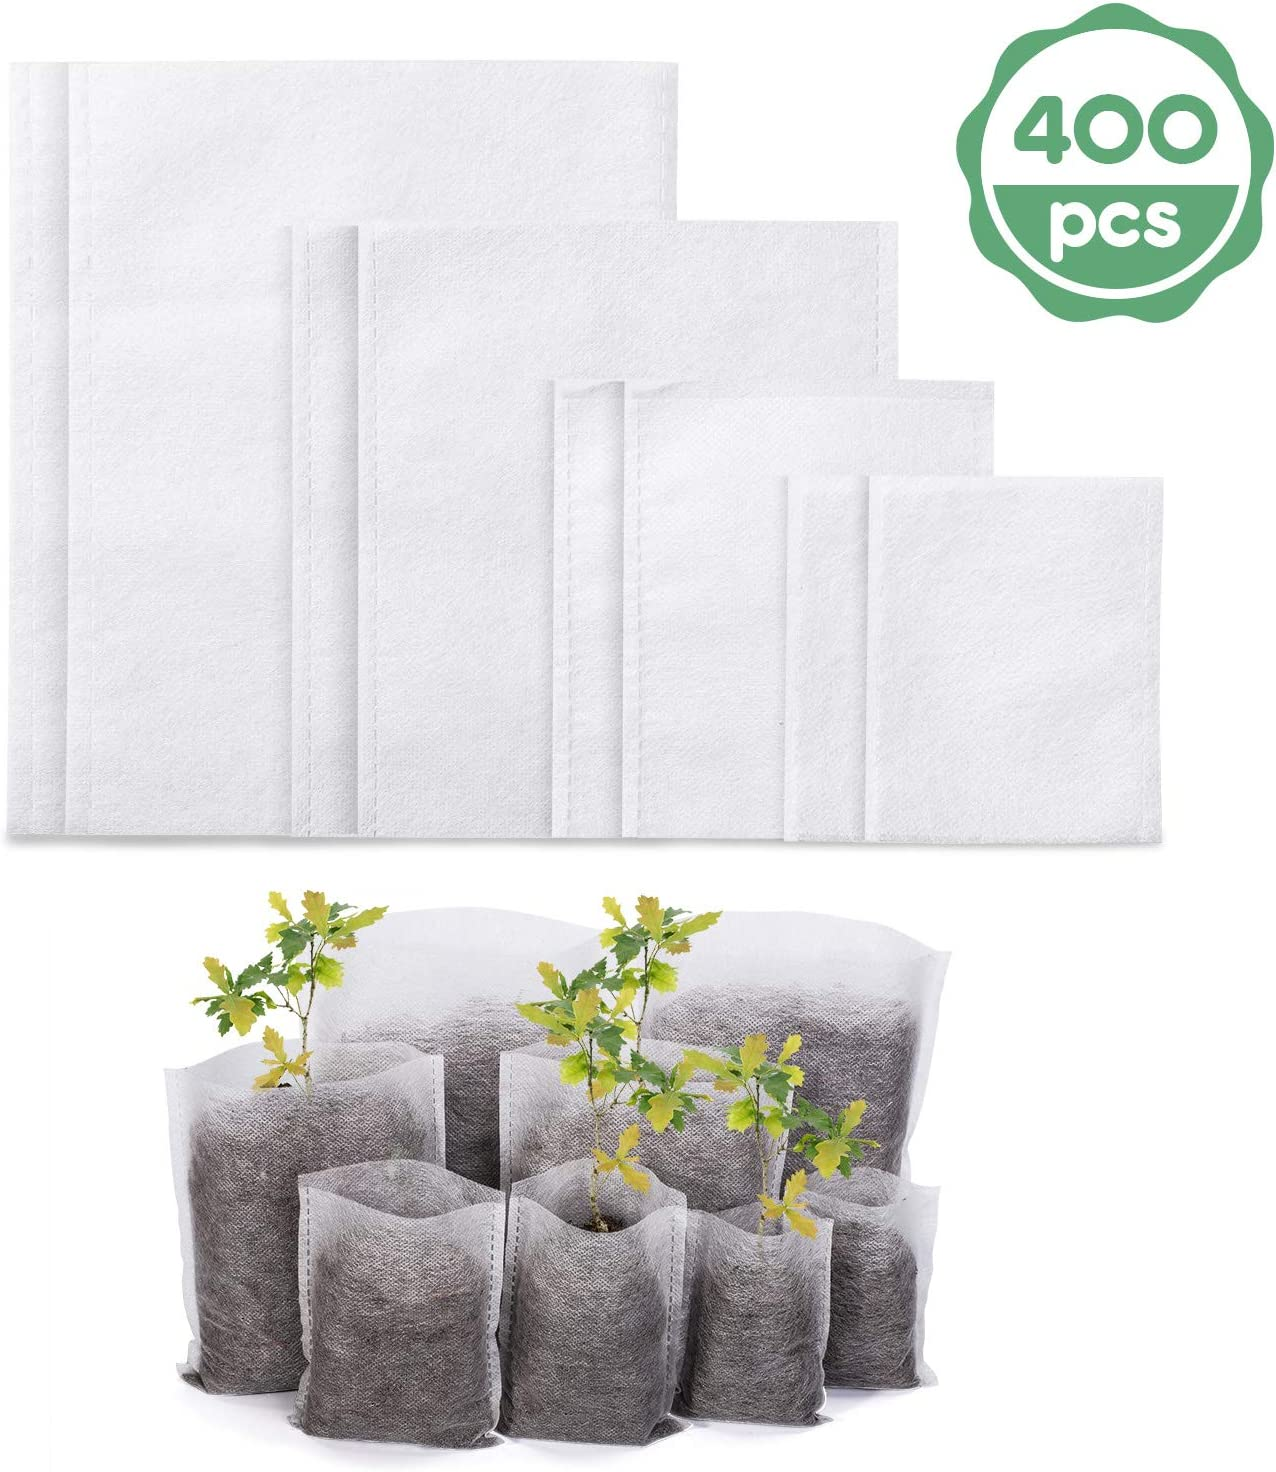 Delxo 400Pcs 4 Size Biodegradable Non-Woven Nursery Bags Plant Grow Bags Fabric Seedling Bags Home Garden Supply